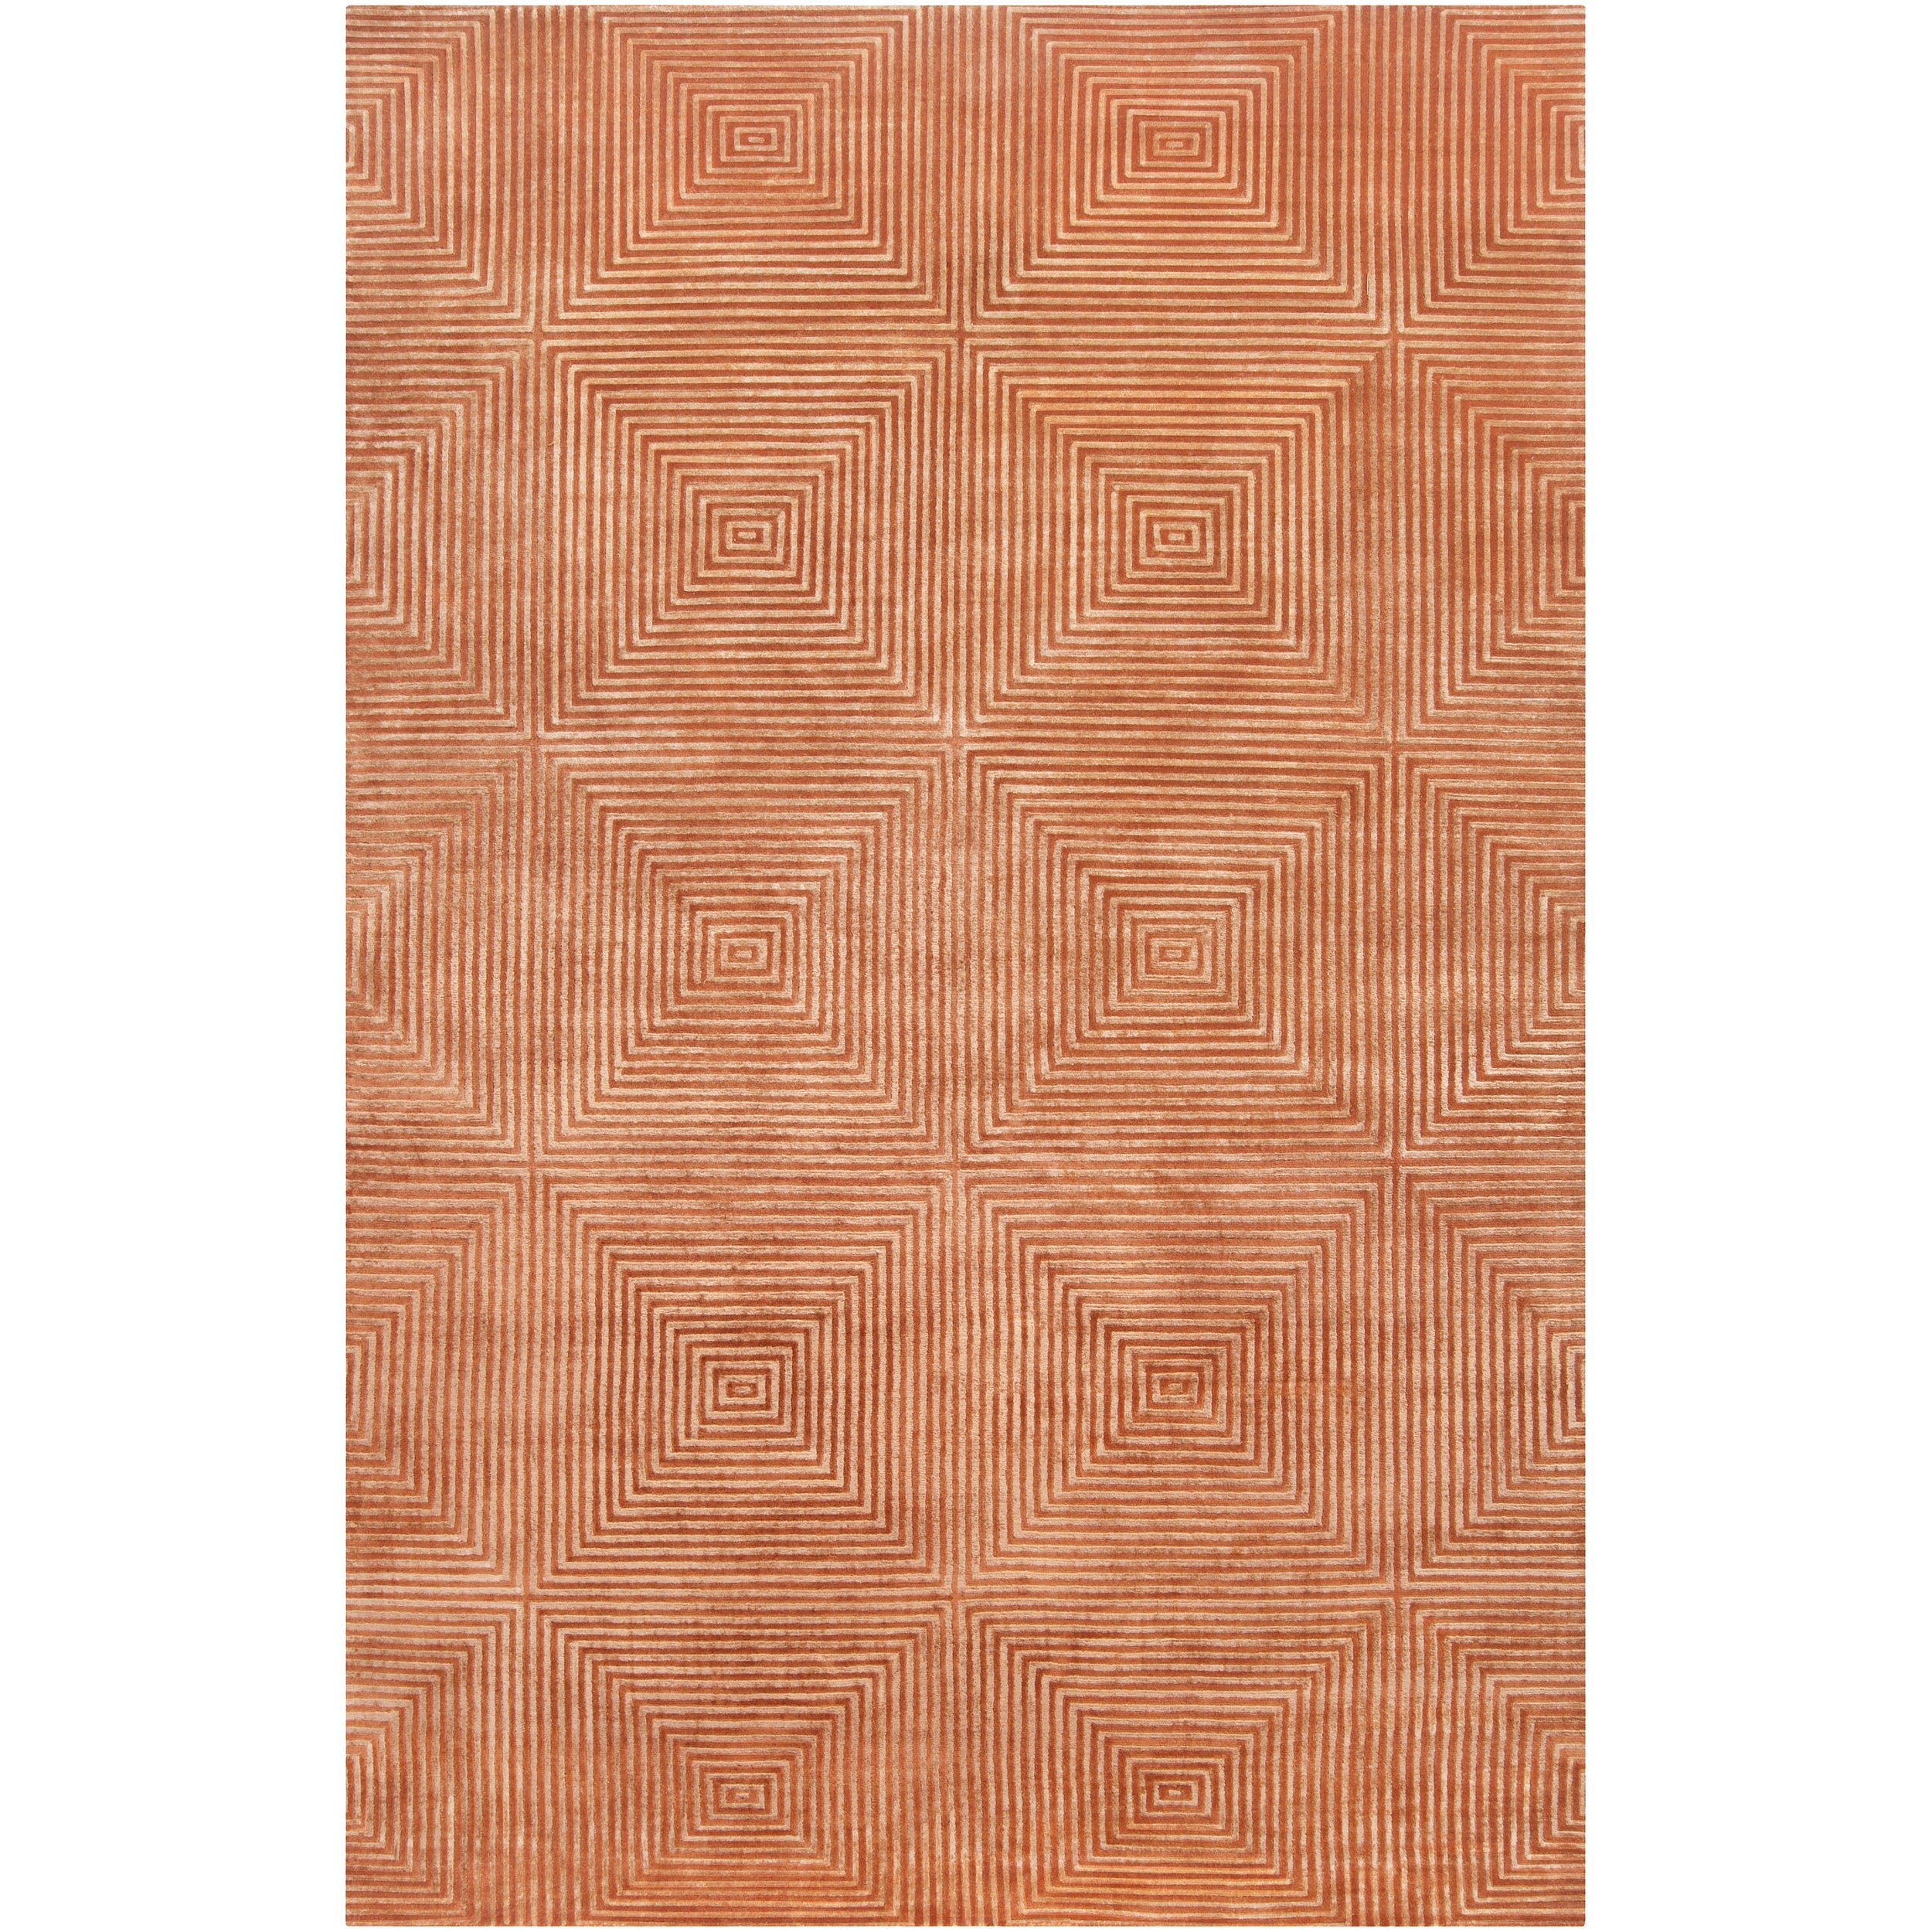 Hand-knotted Elko Geometric Wool Rug (5' x 8') - Thumbnail 0